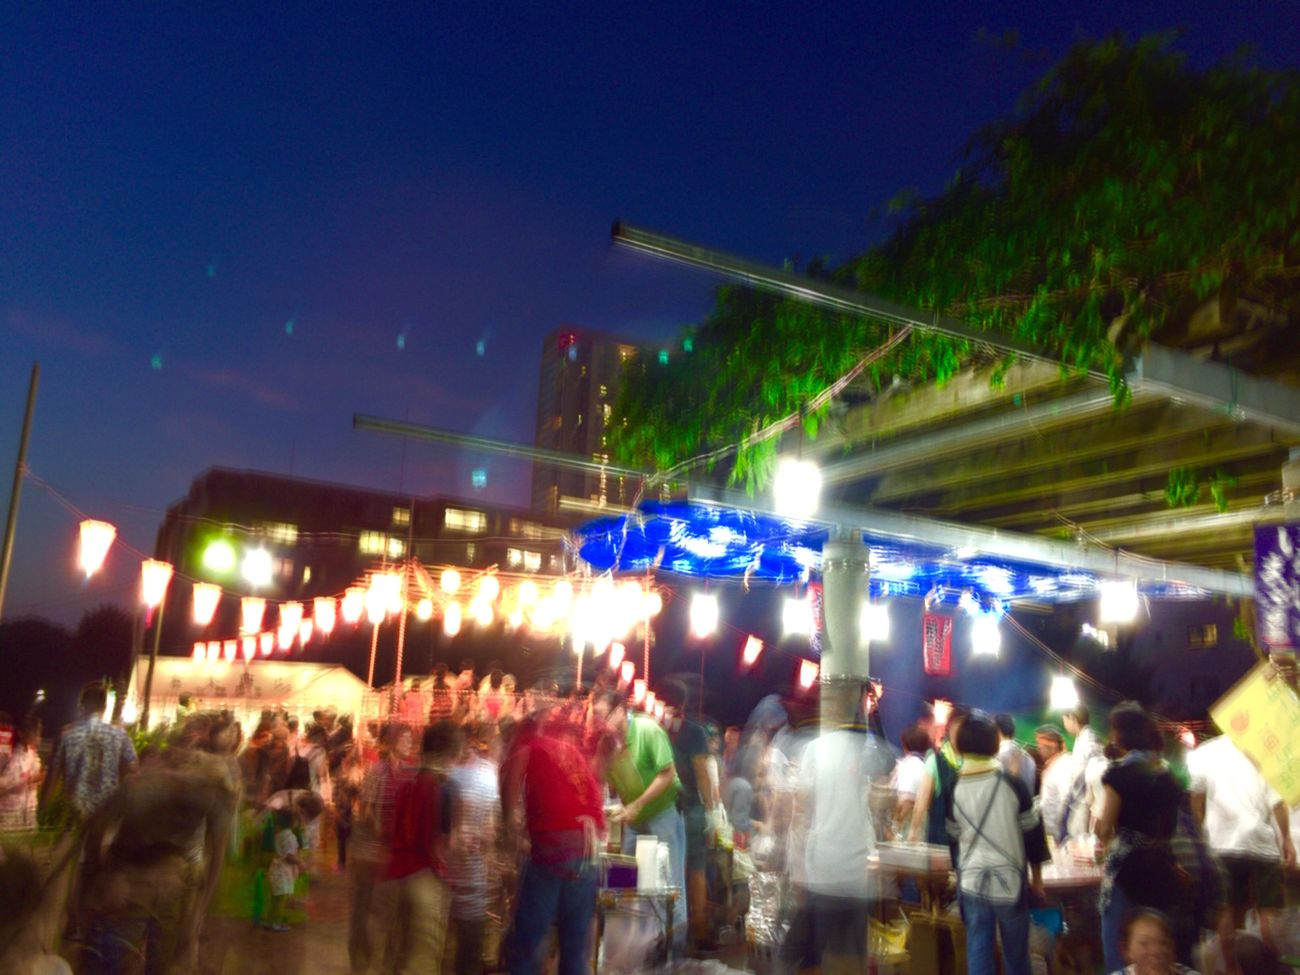 Omatsuri Japanese Style Japanese Culture Summertime Summer Nights Holydays IPhoneography